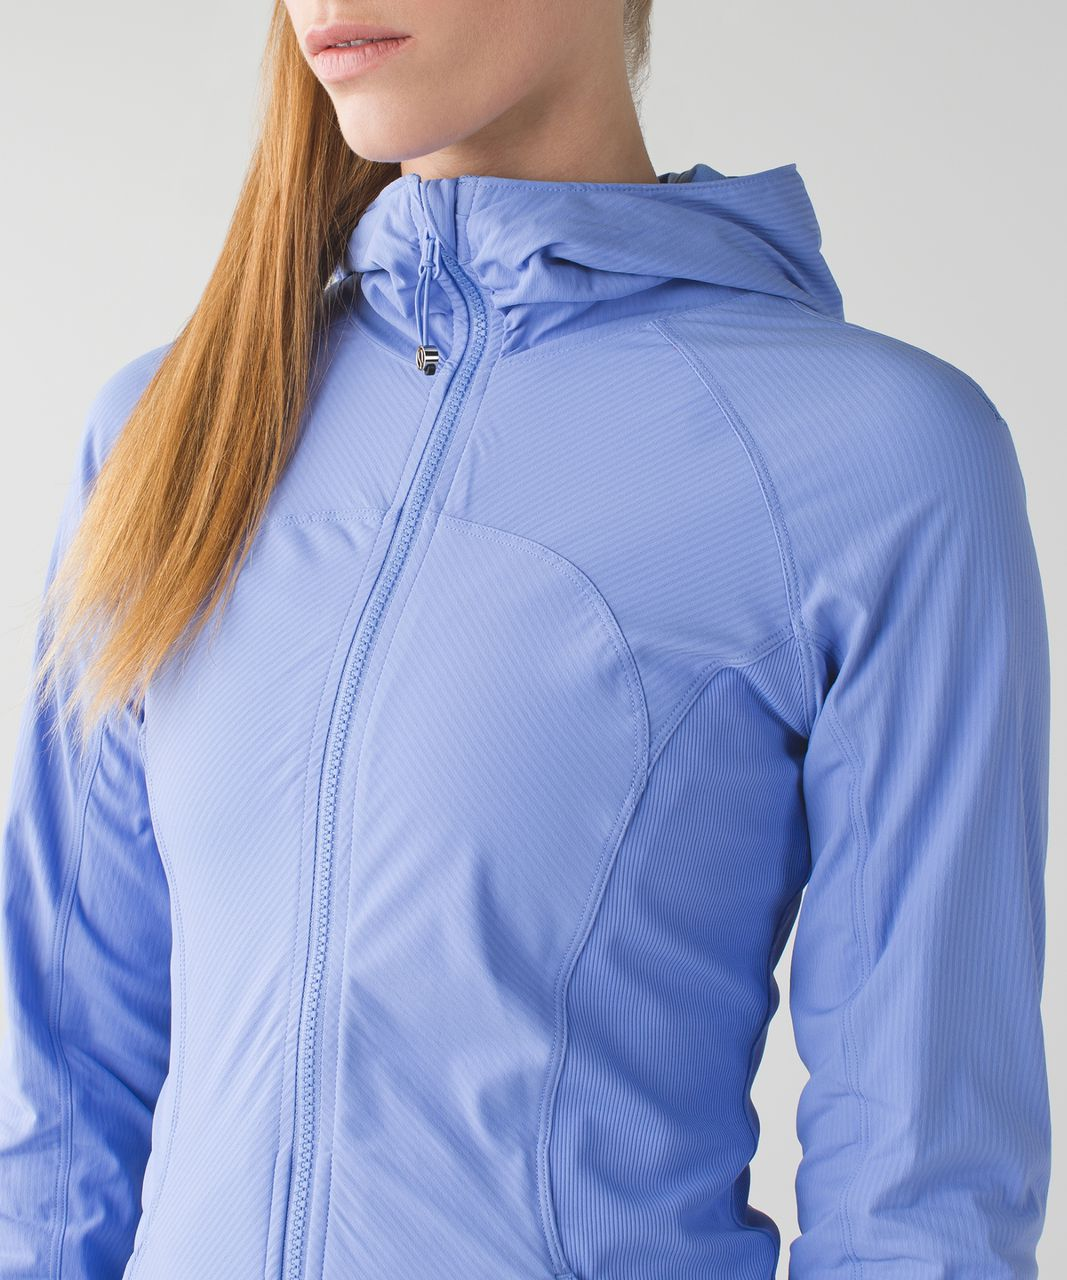 Lululemon In Flux Jacket - Lullaby